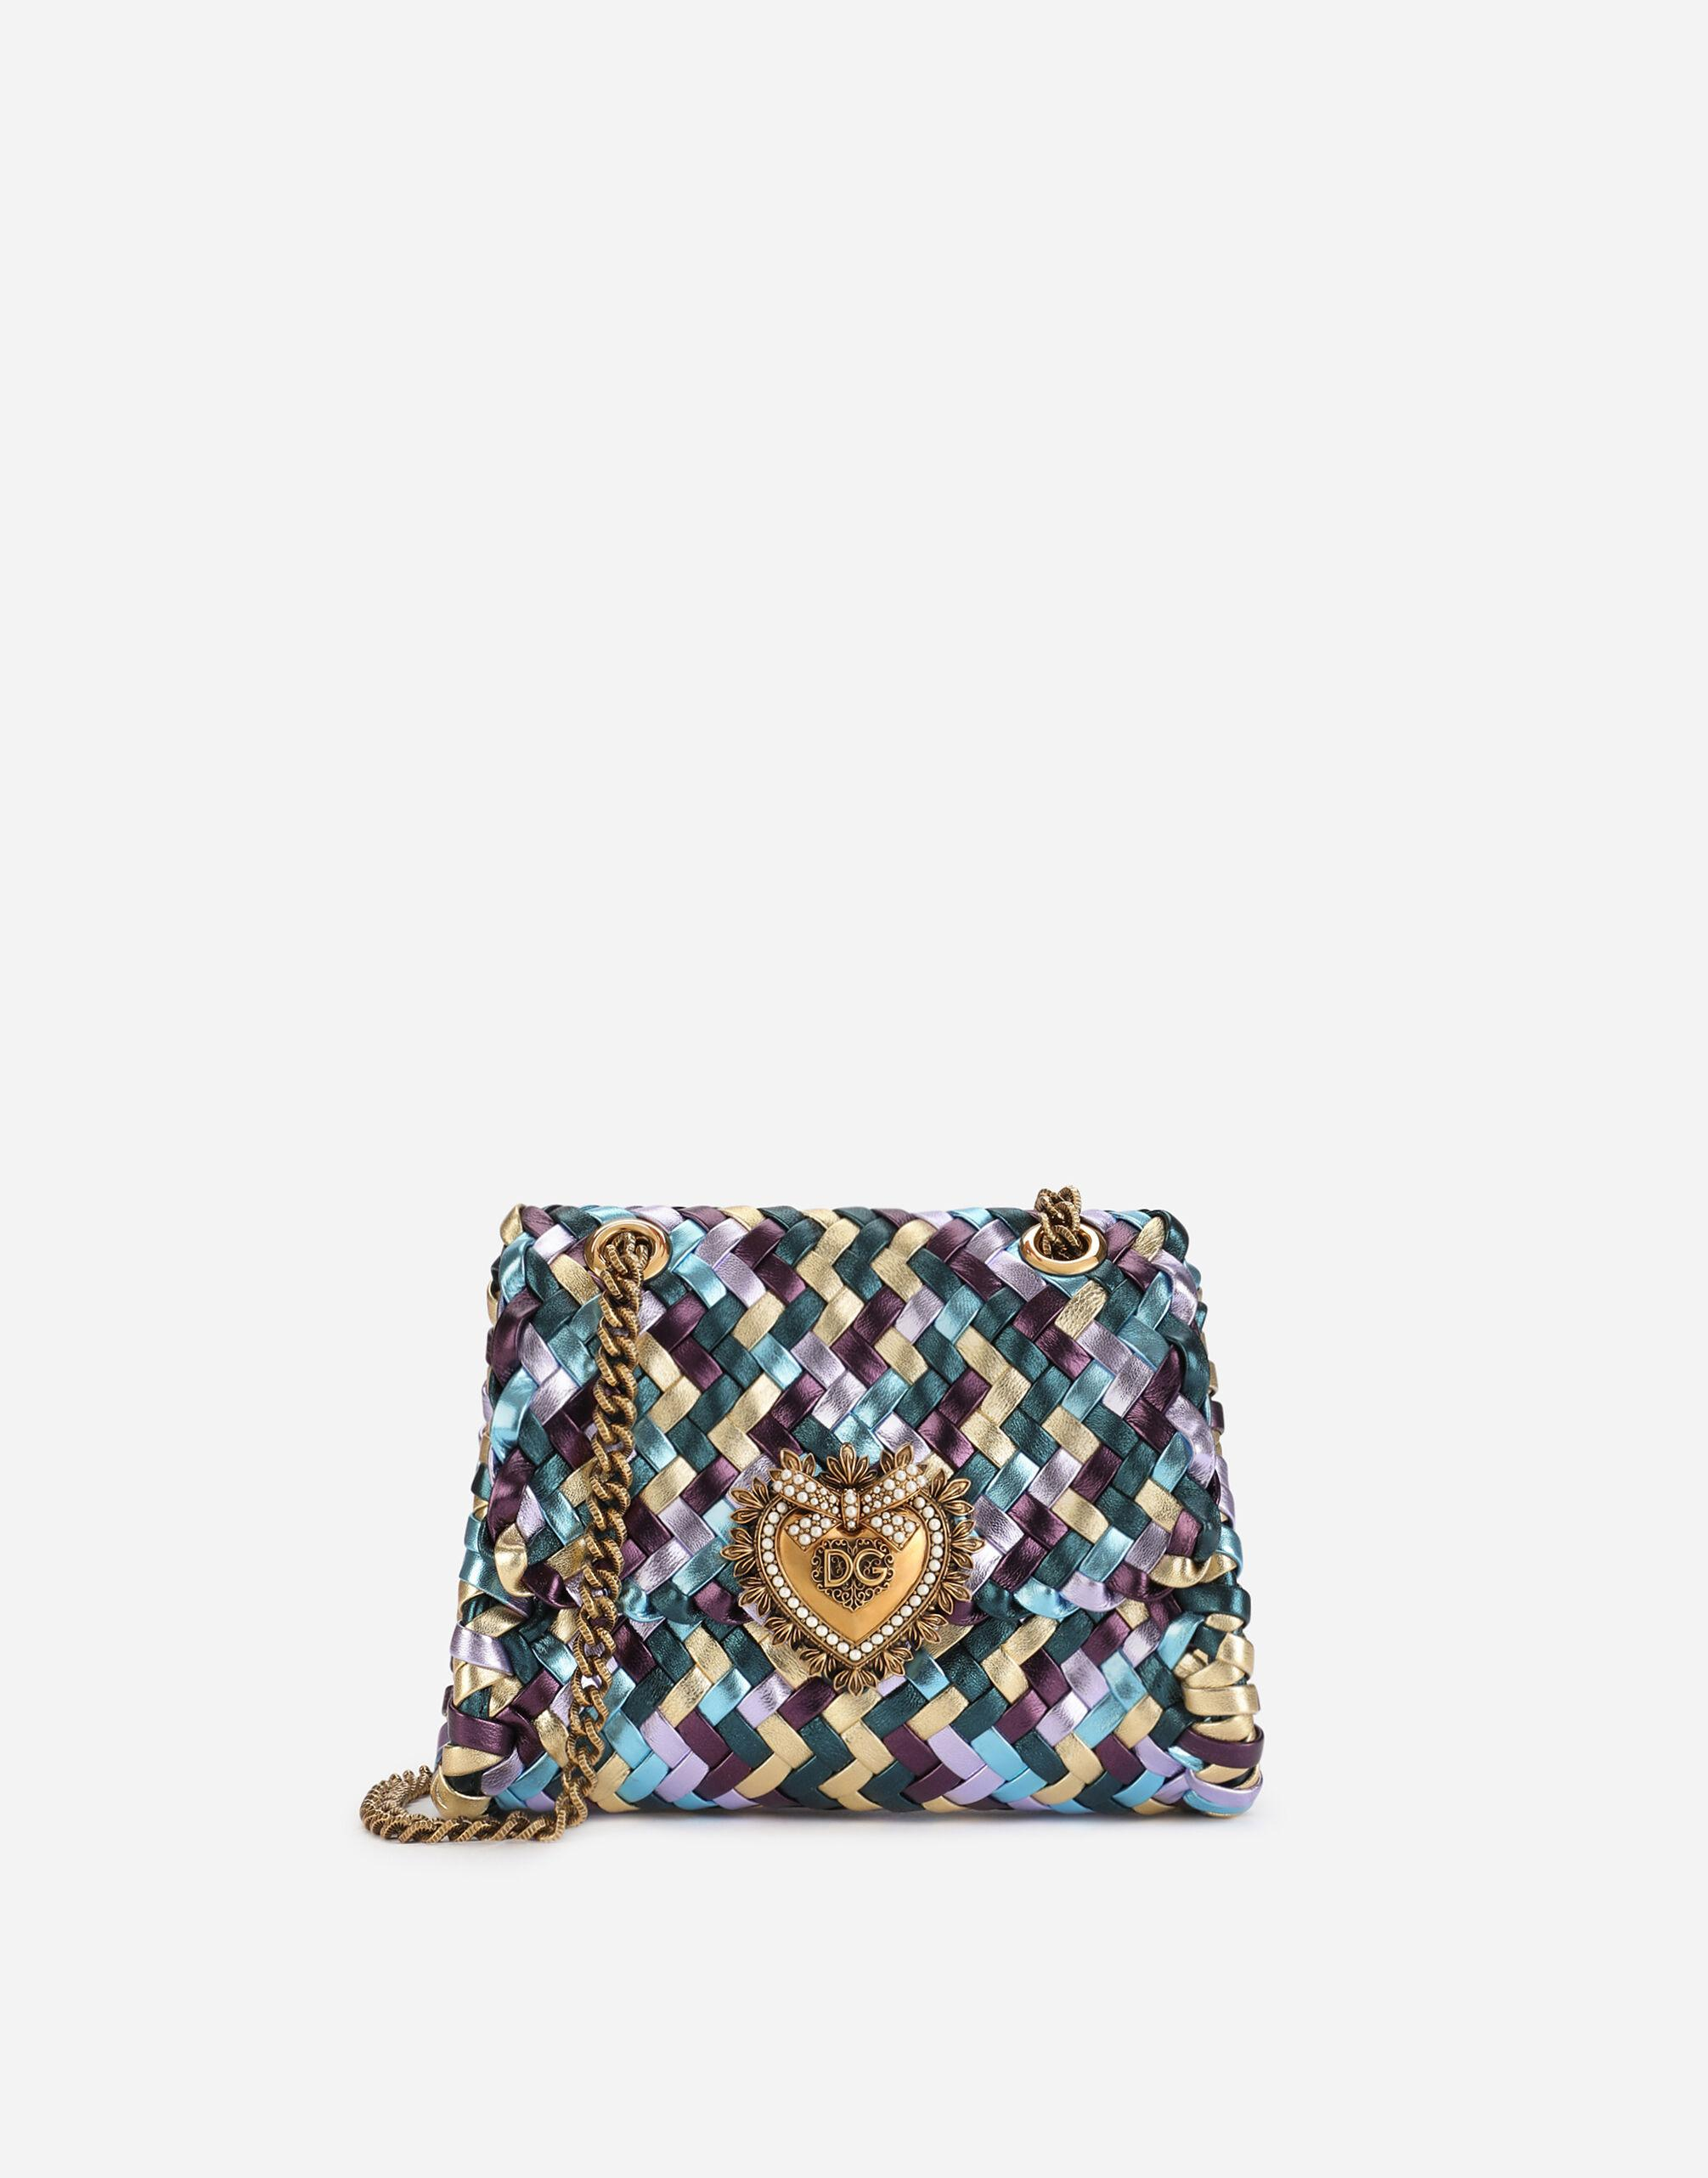 Small Devotion shoulder bag in woven laminated nappa leather